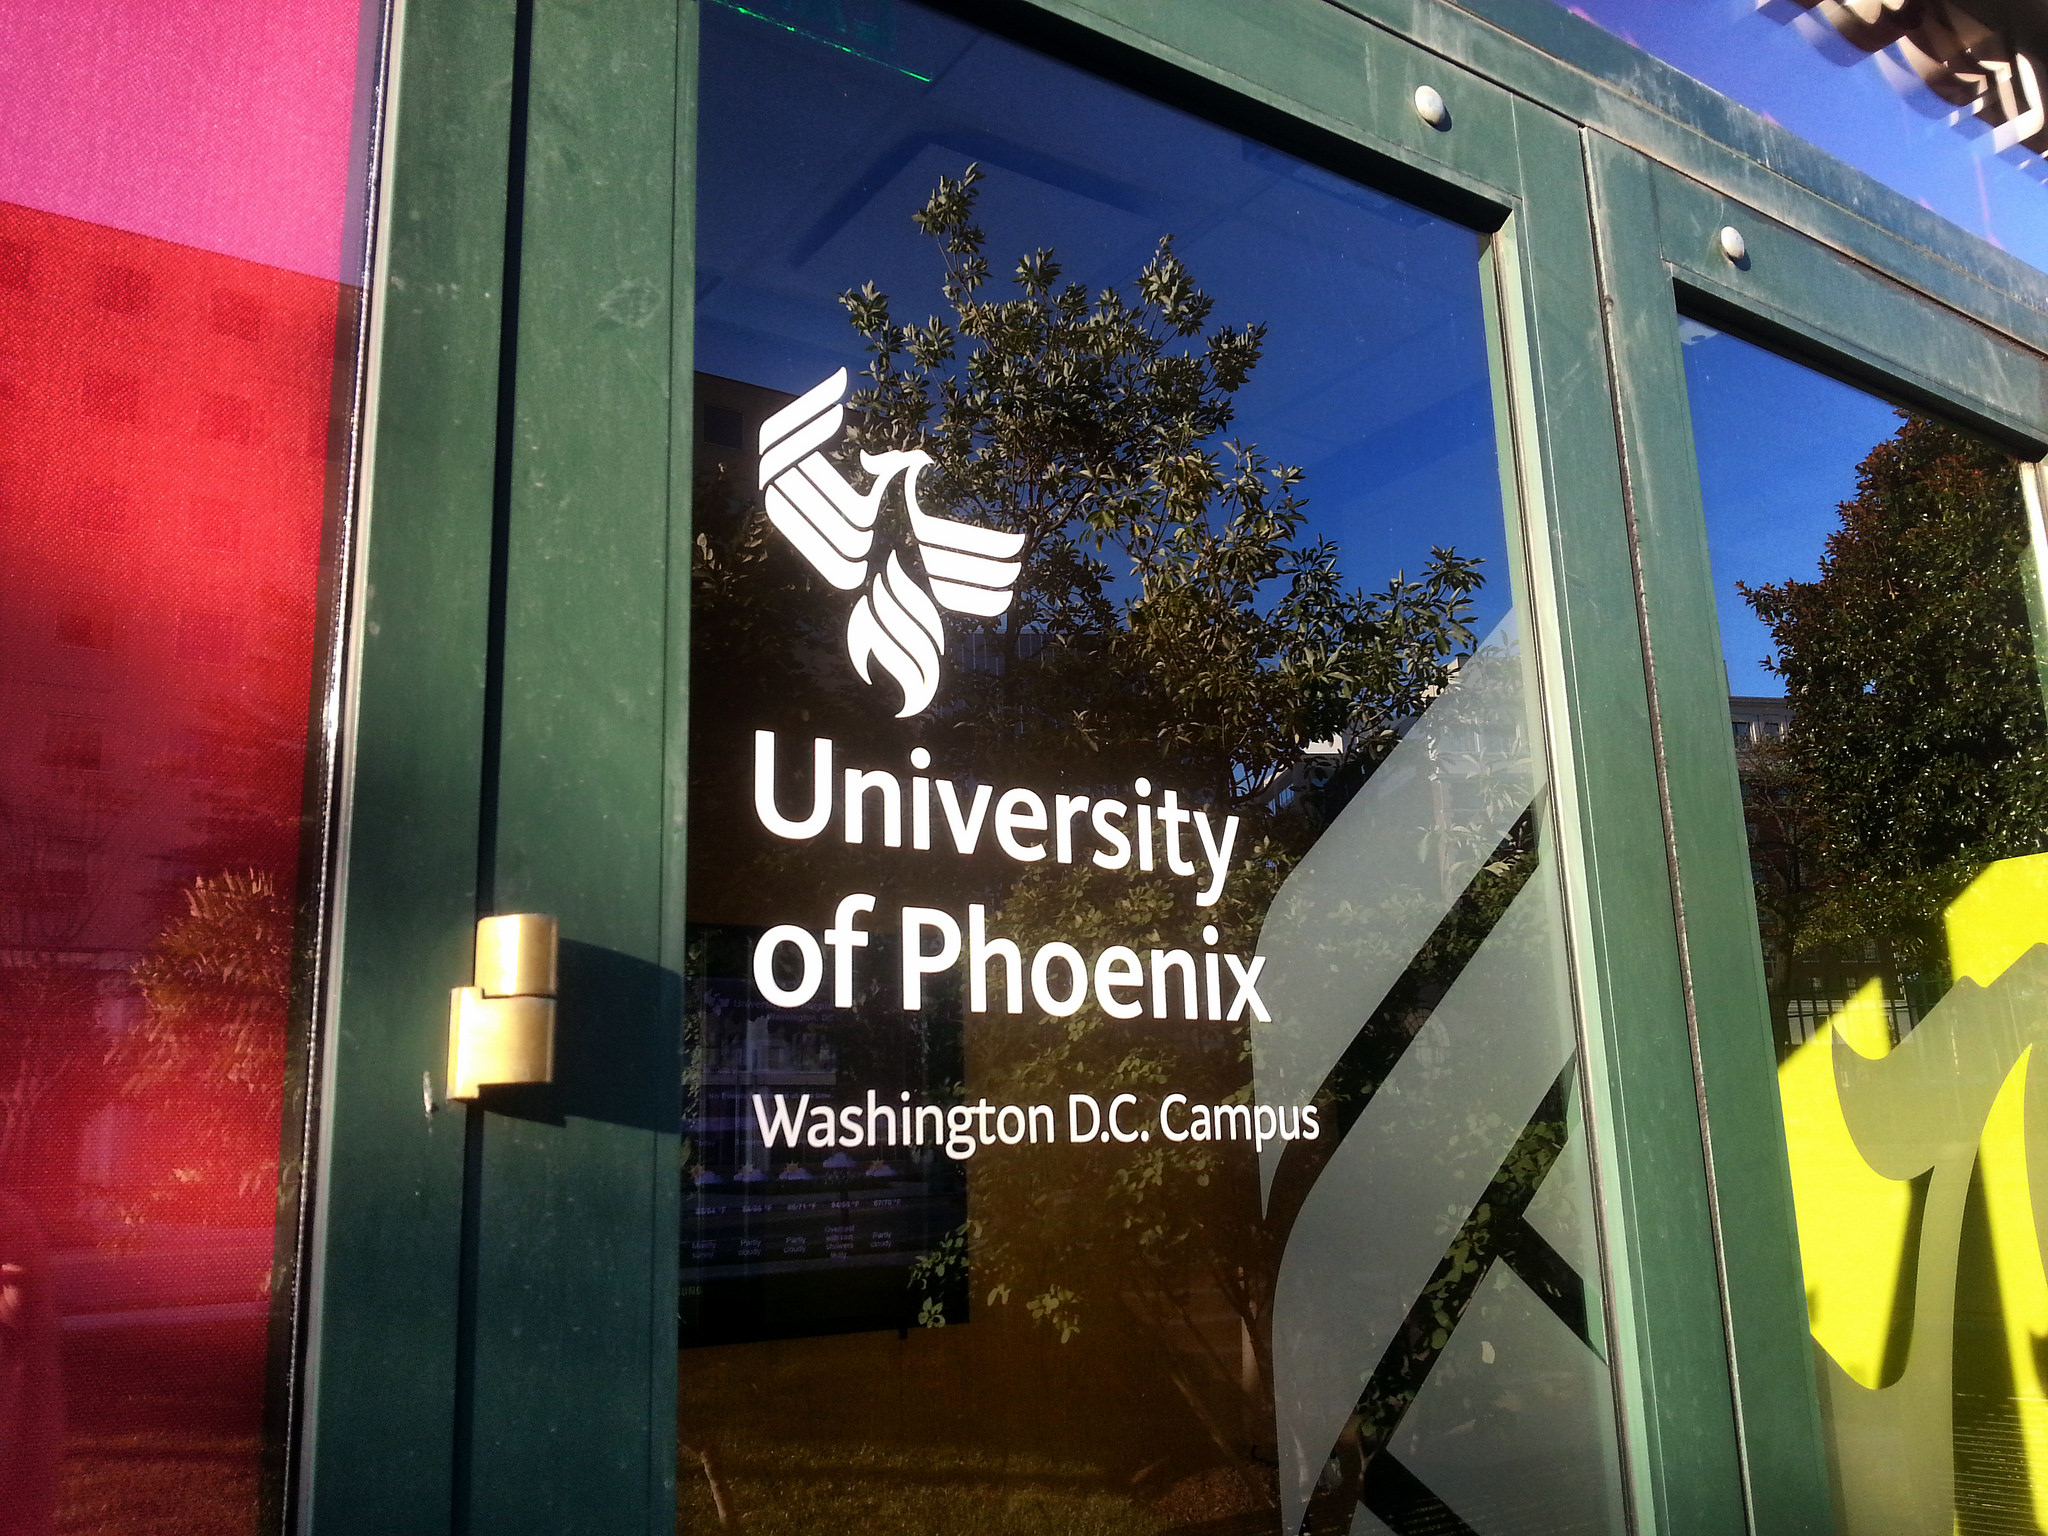 a glass door with name and logo of a University